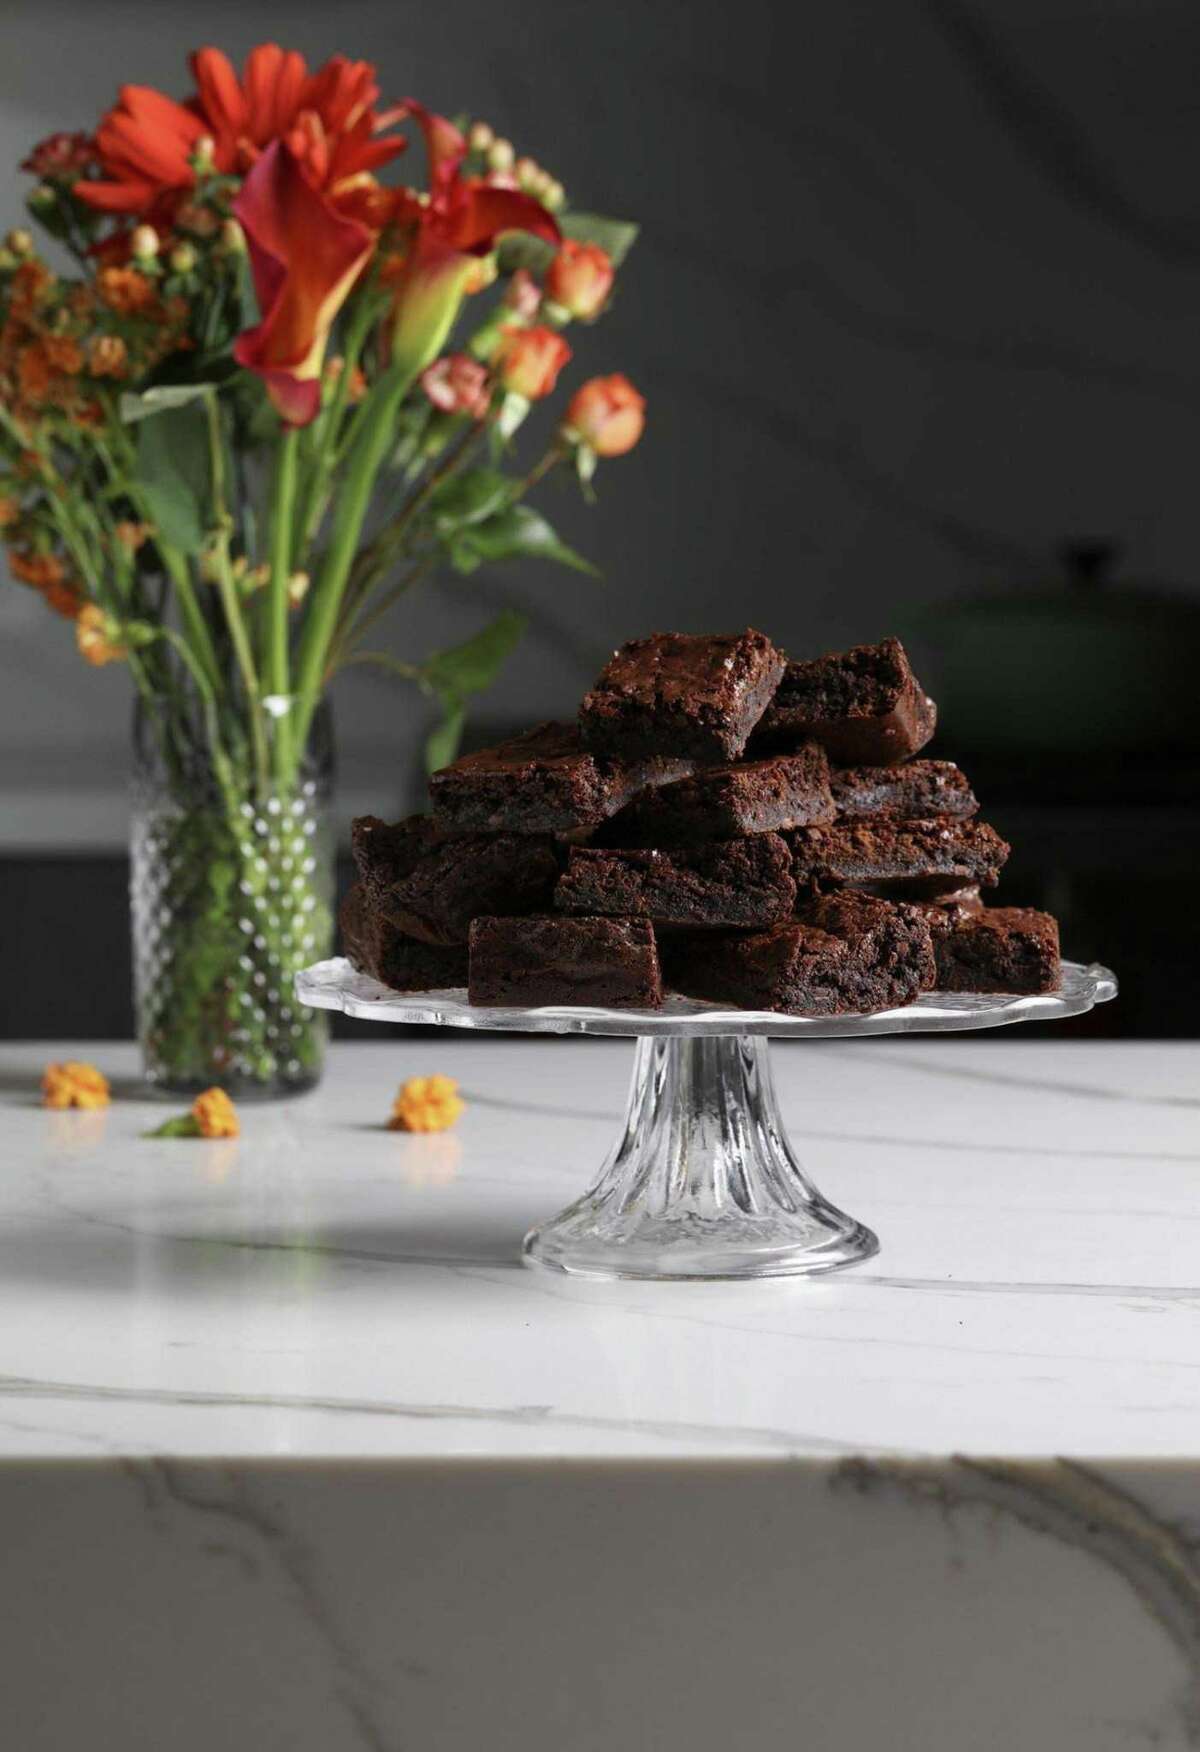 Brownies made with green banana flour are studded with cacao nibs for more chocolate flavor and for texture. (Abel Uribe/Chicago Tribune/TNS)